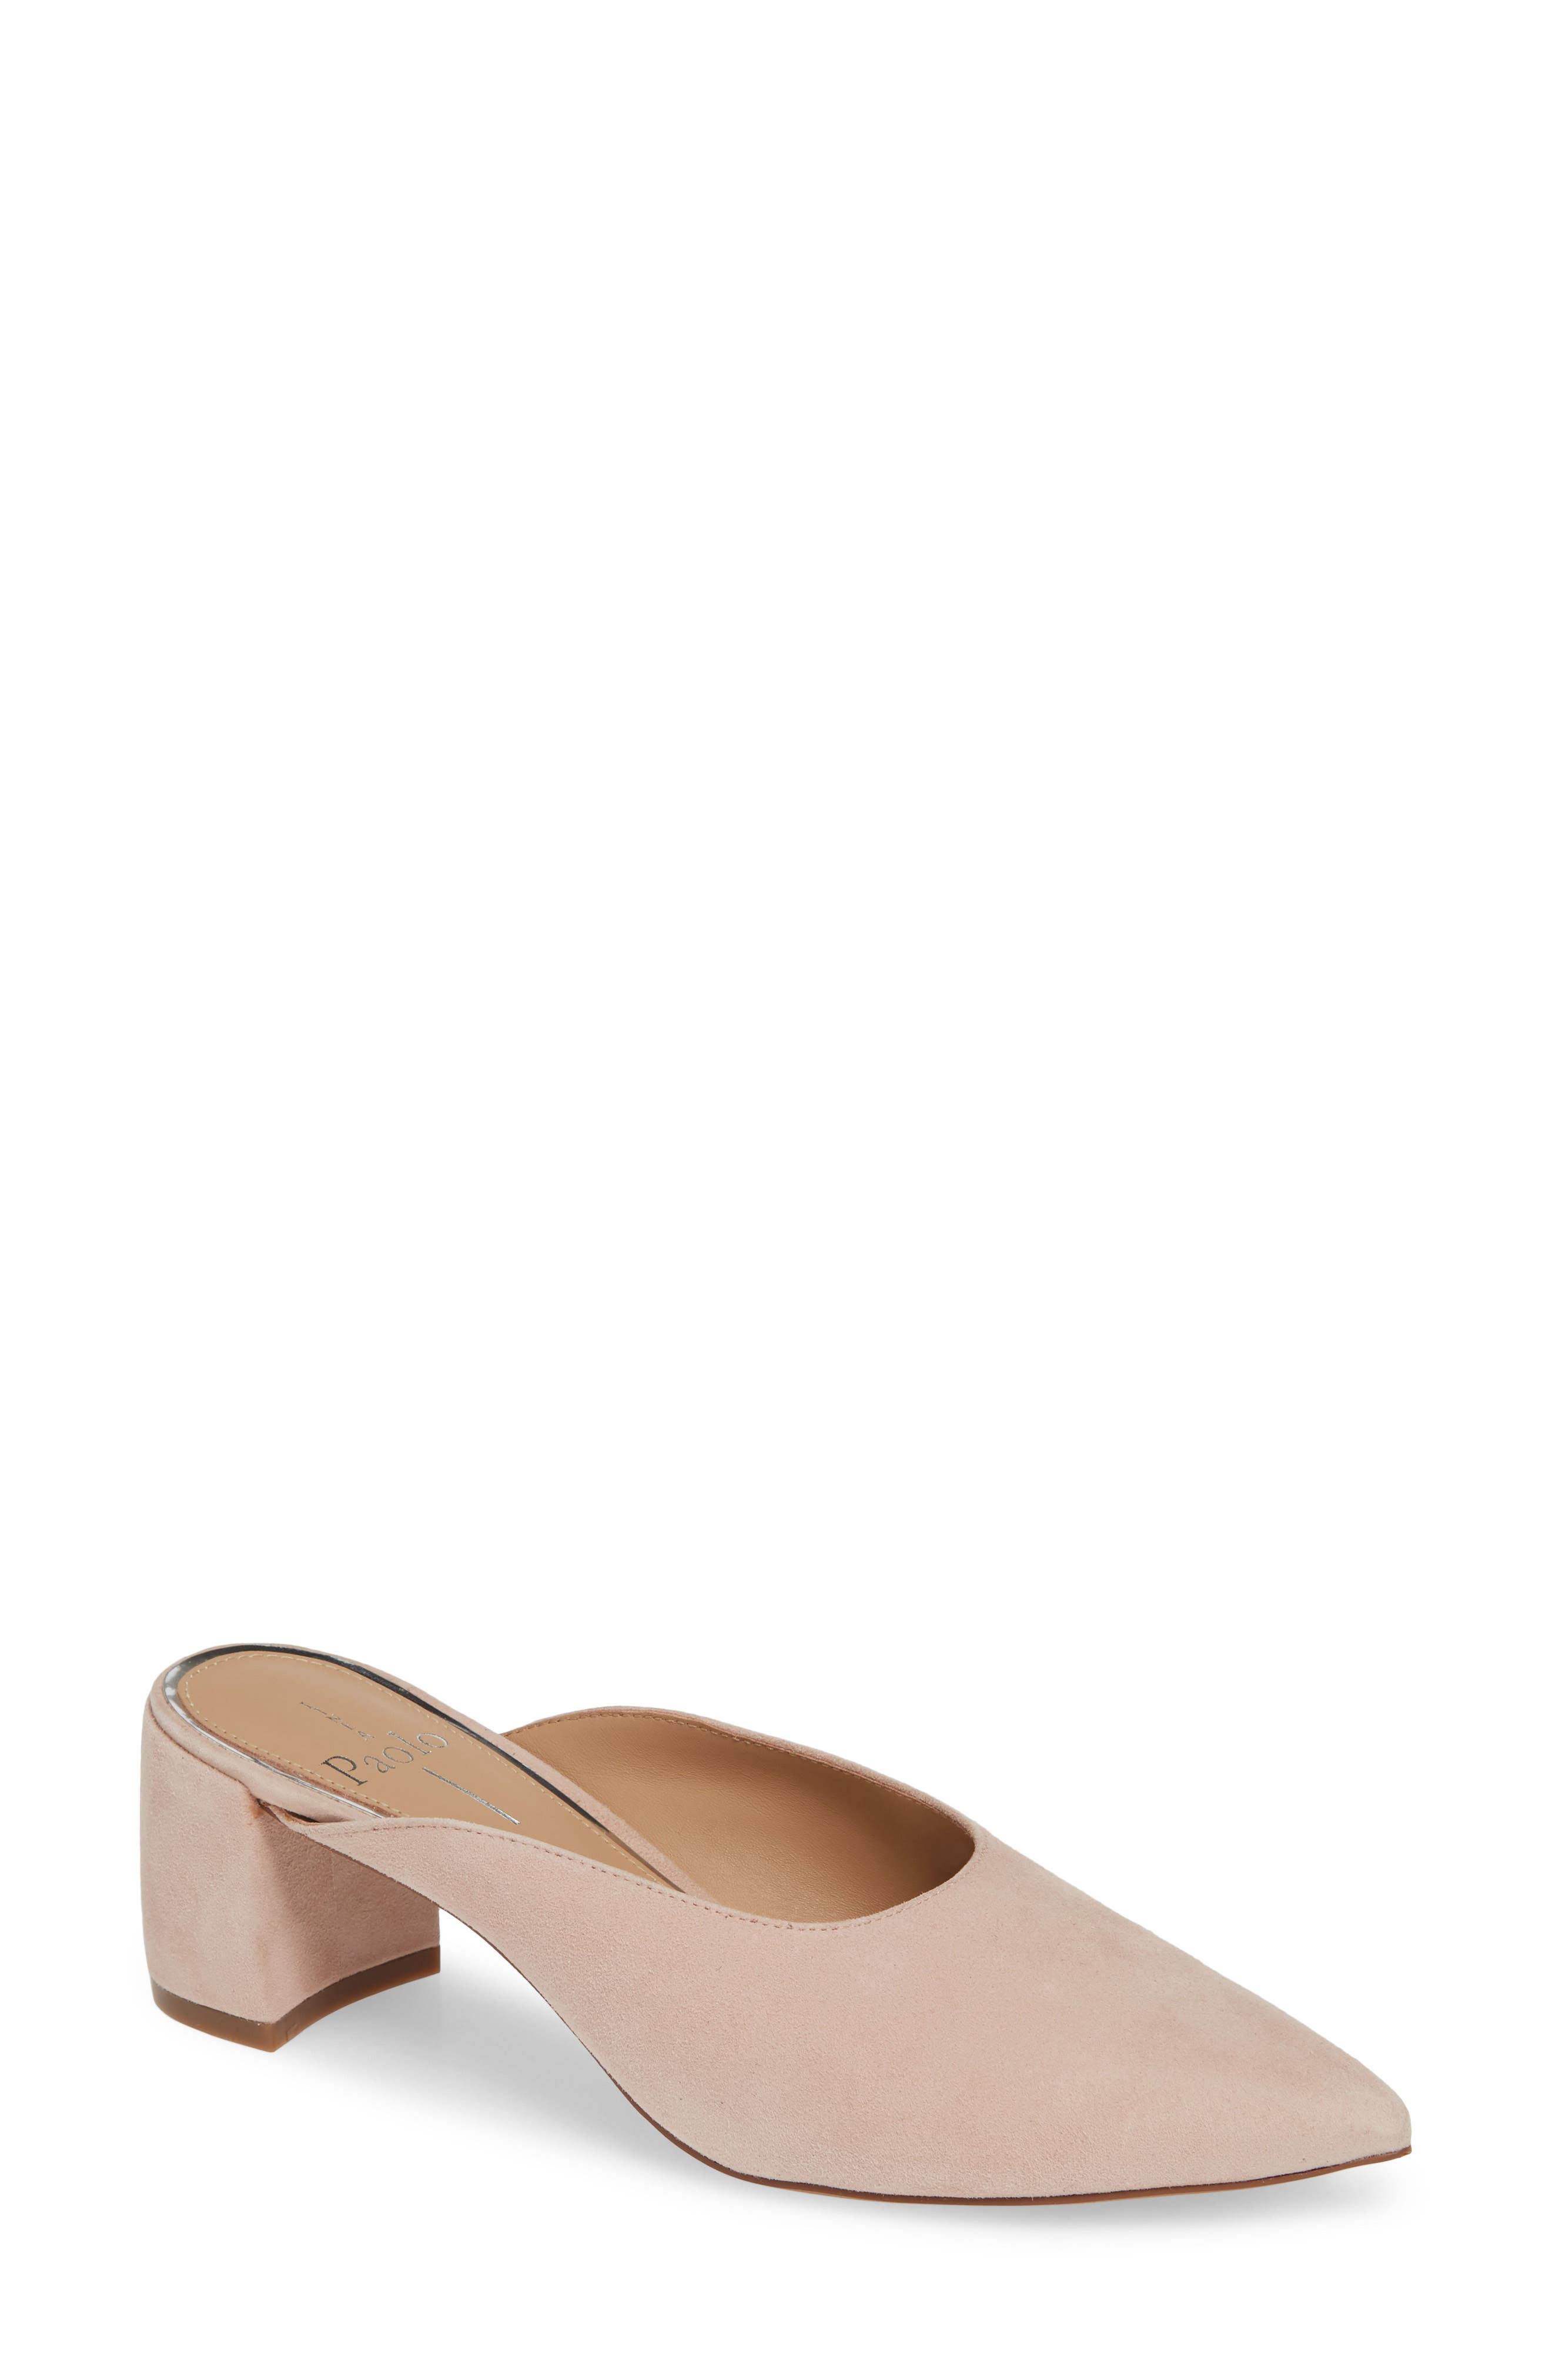 A curved block heel and U-shaped topline balance the dramatically pointed toe of a day-to-night mule with versatile appeal. Style Name: Linea Paolo Zadie Pointy Toe Mule (Women). Style Number: 5655349. Available in stores.